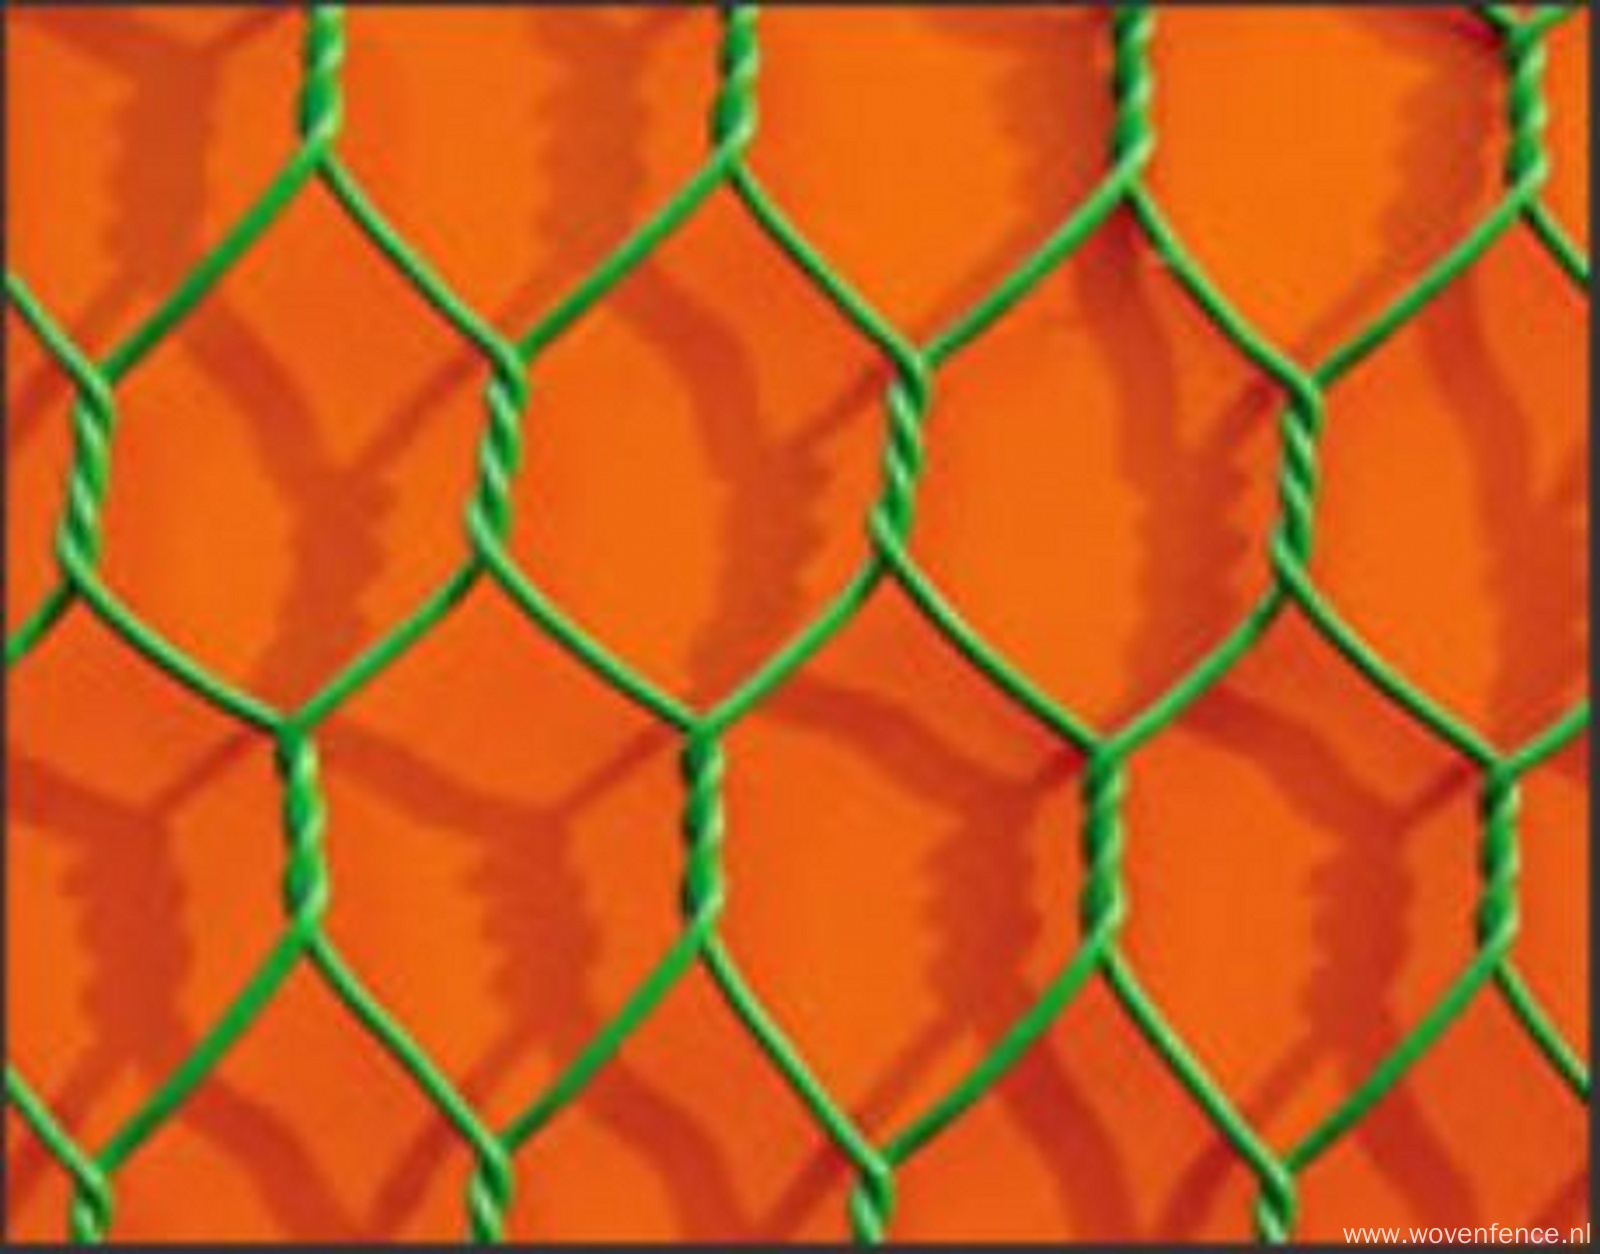 Hexagonal wire mesh with reinforce wire